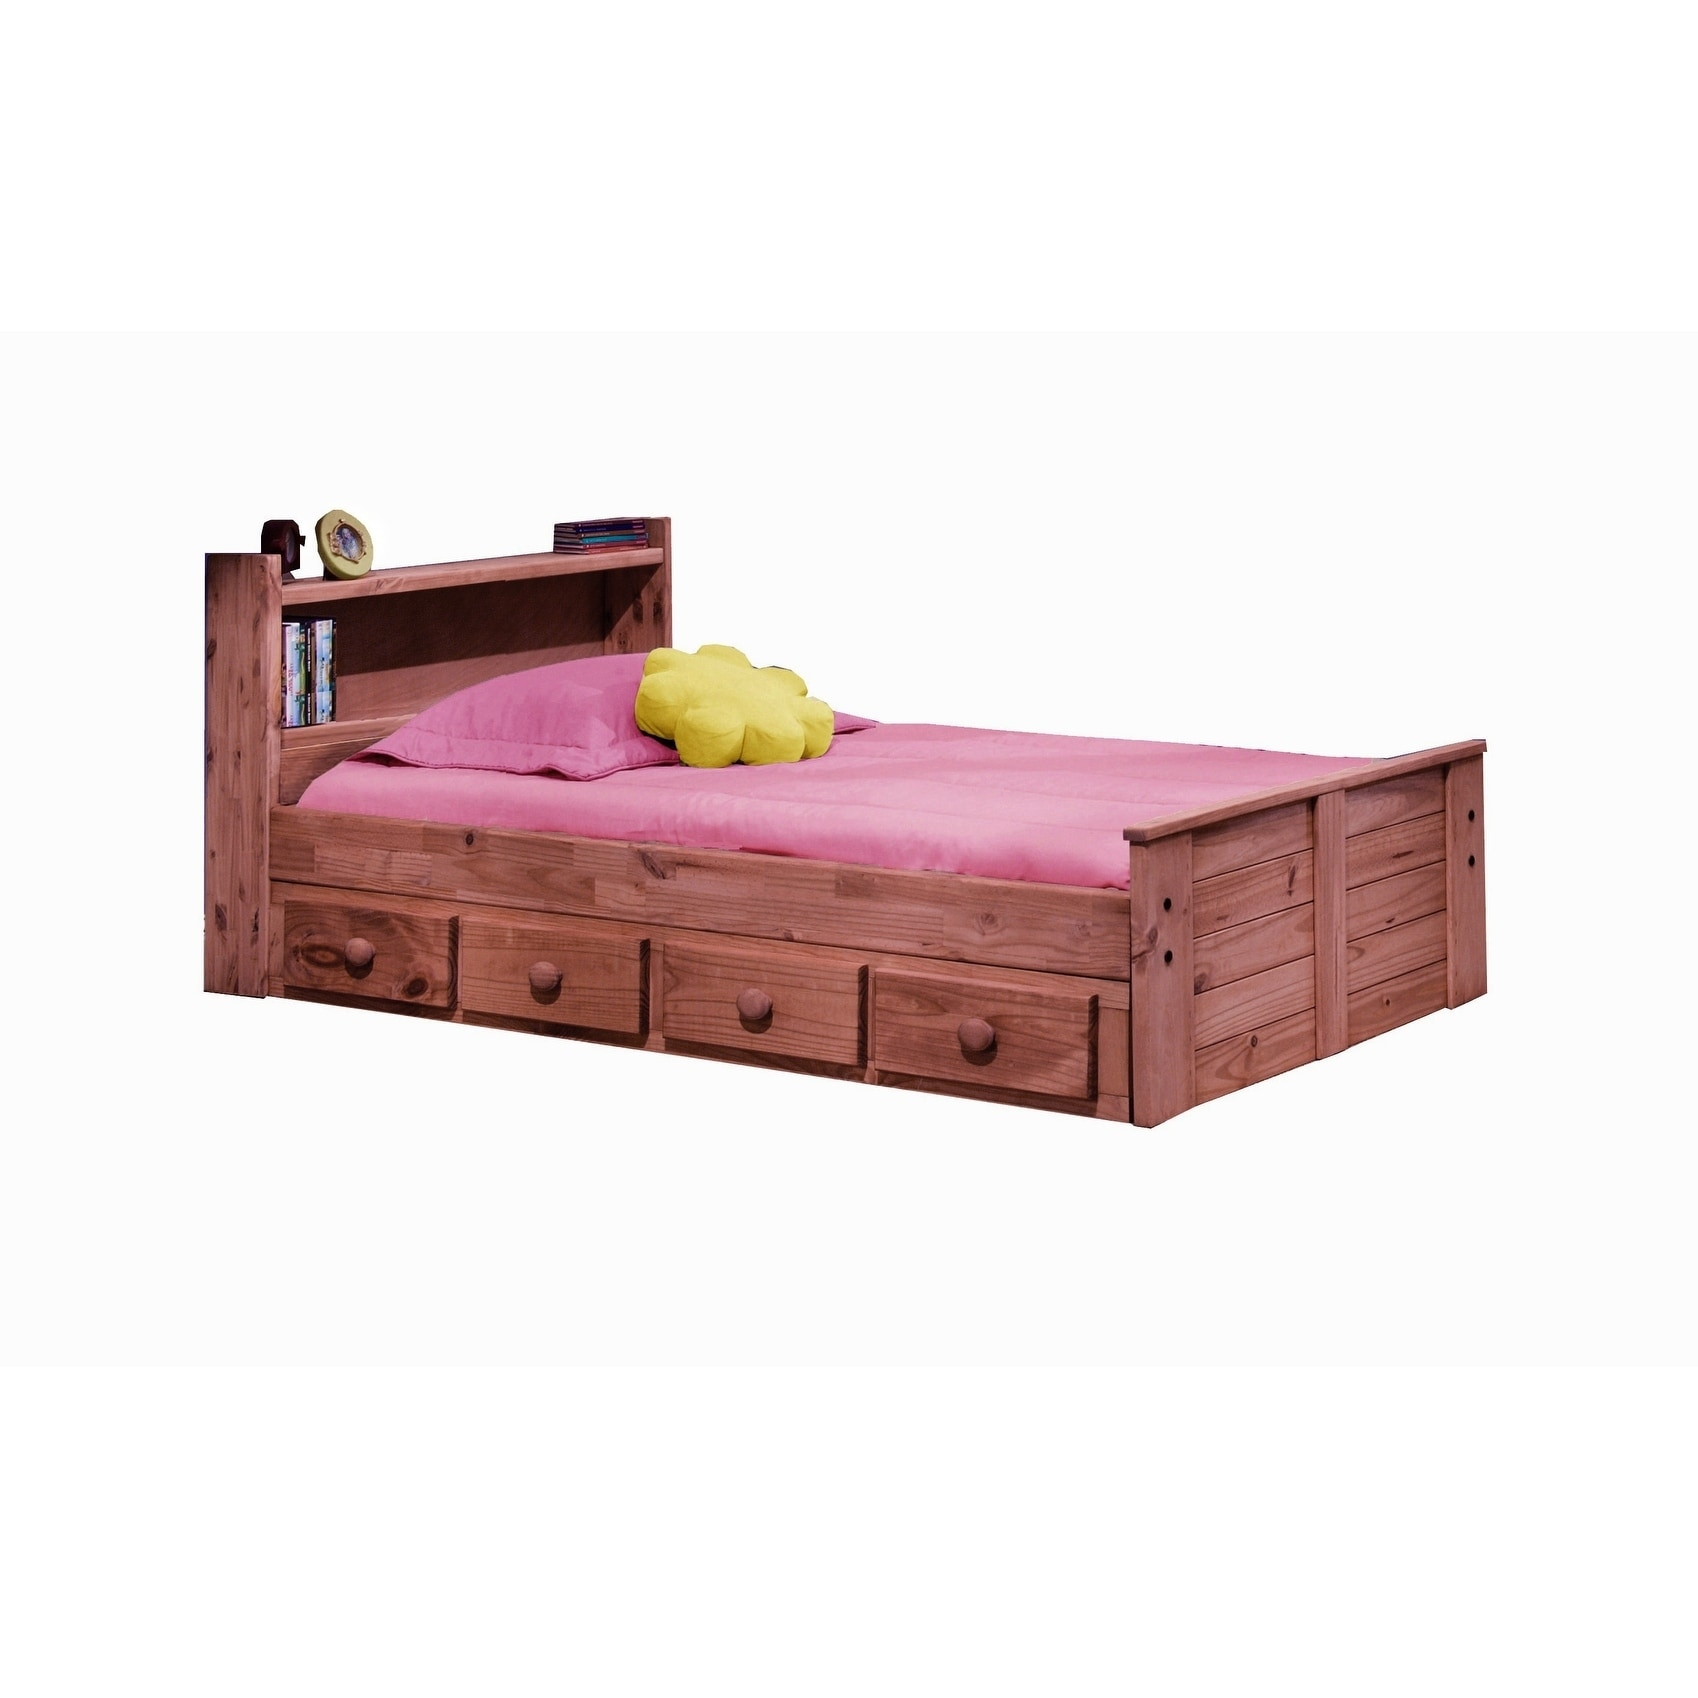 Mahogany Hill Twin Bed With Bookcase Headboard And Storage